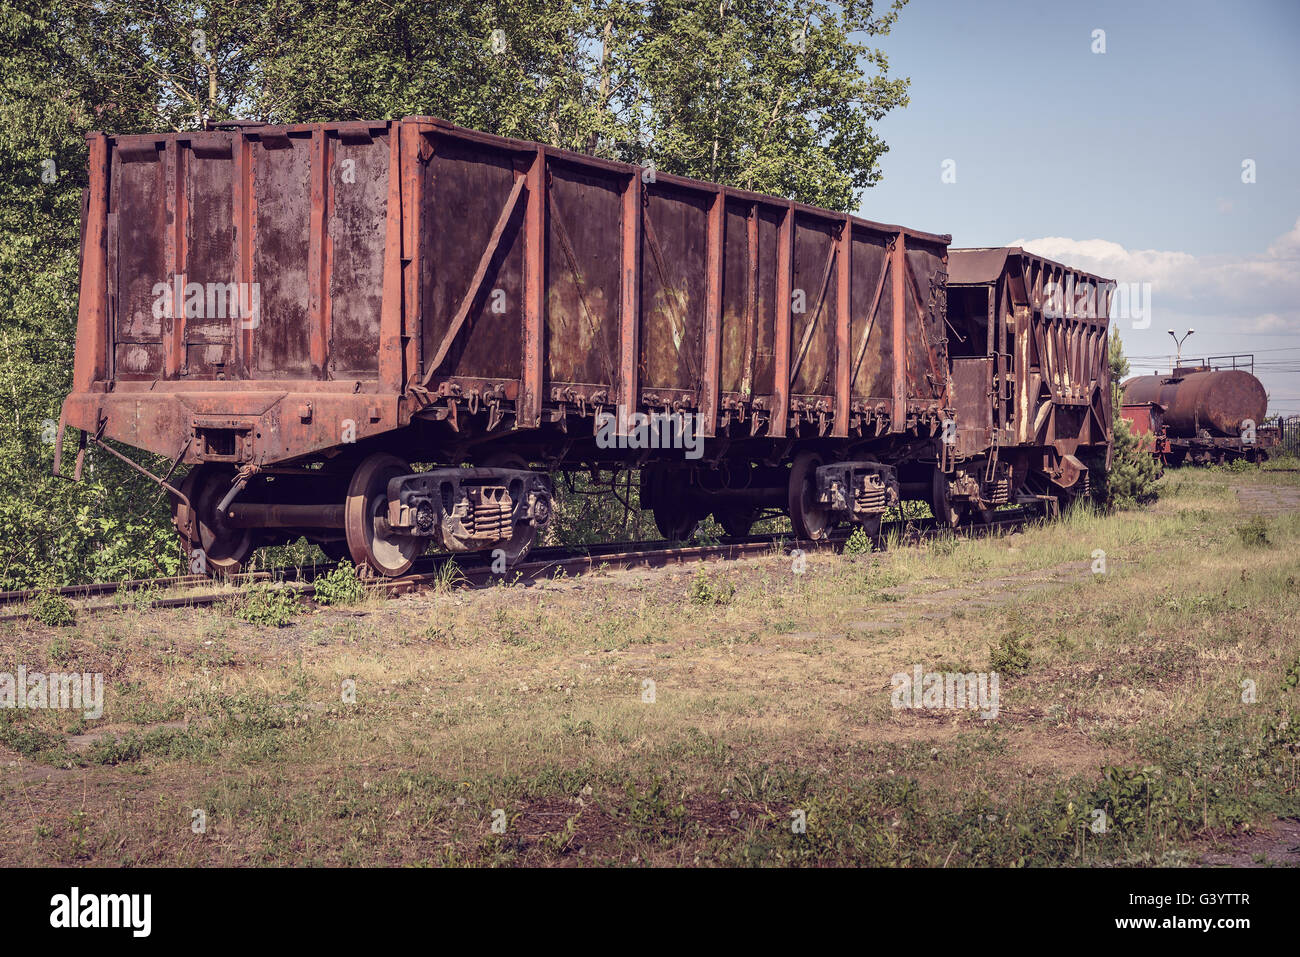 Old open wagon and hopper car  Old industrial railway cars